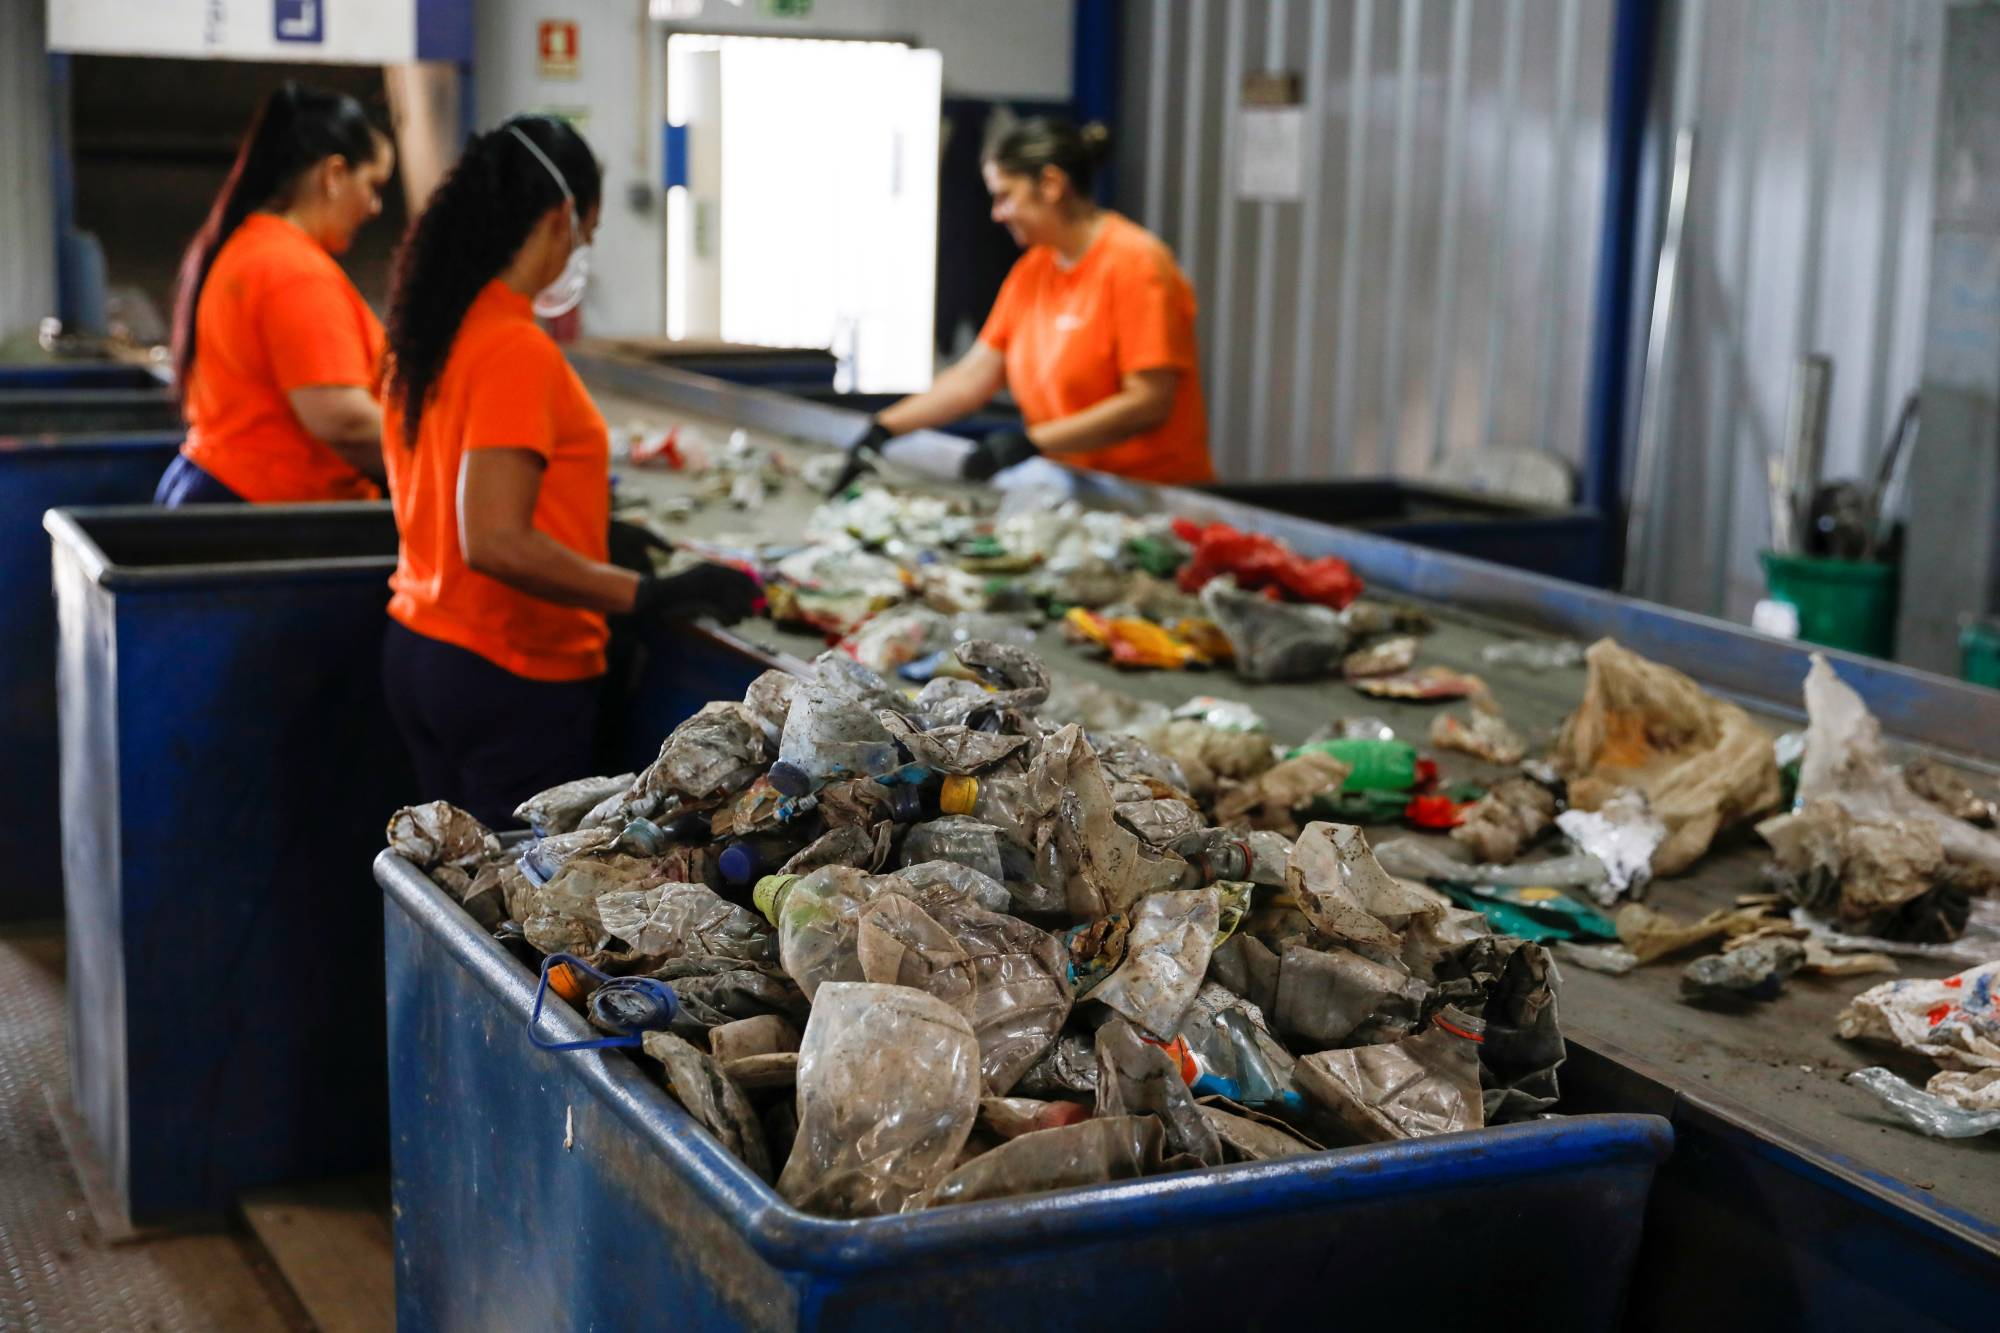 Workers separate different types of plastic at an Extruplas plant in Seixal, Portugal.   REUTERS